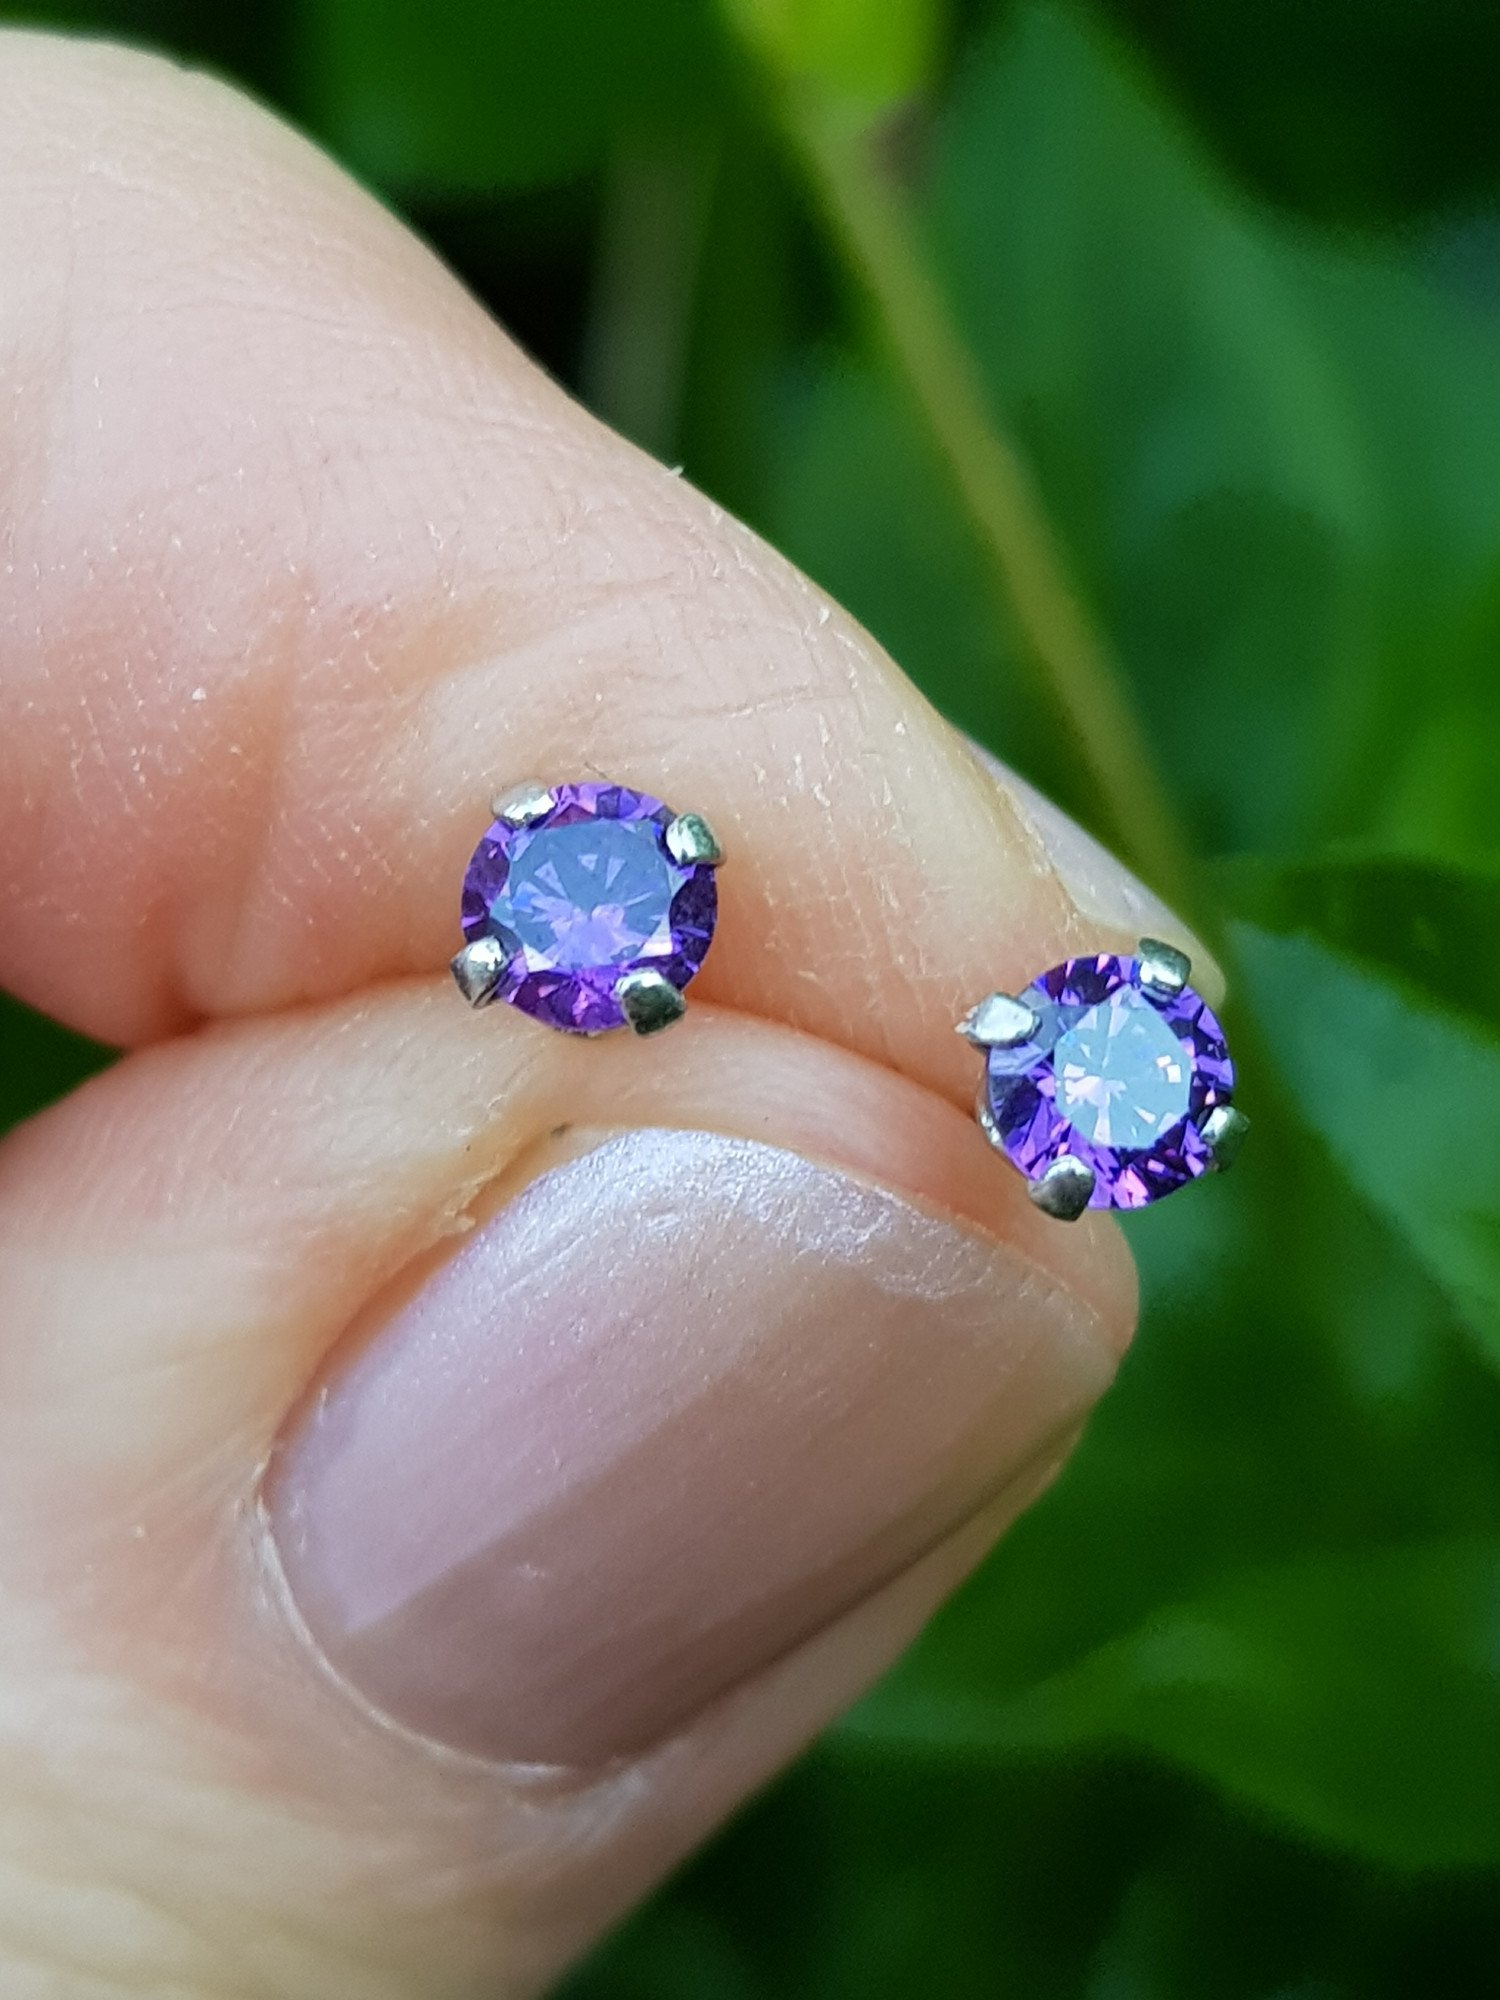 LIMITED STOCK - SILVER, CUBIC ZIRCONIA AMETHYST STUD EARRINGS - ONLY £9.95 - FREE UK DELIVERY